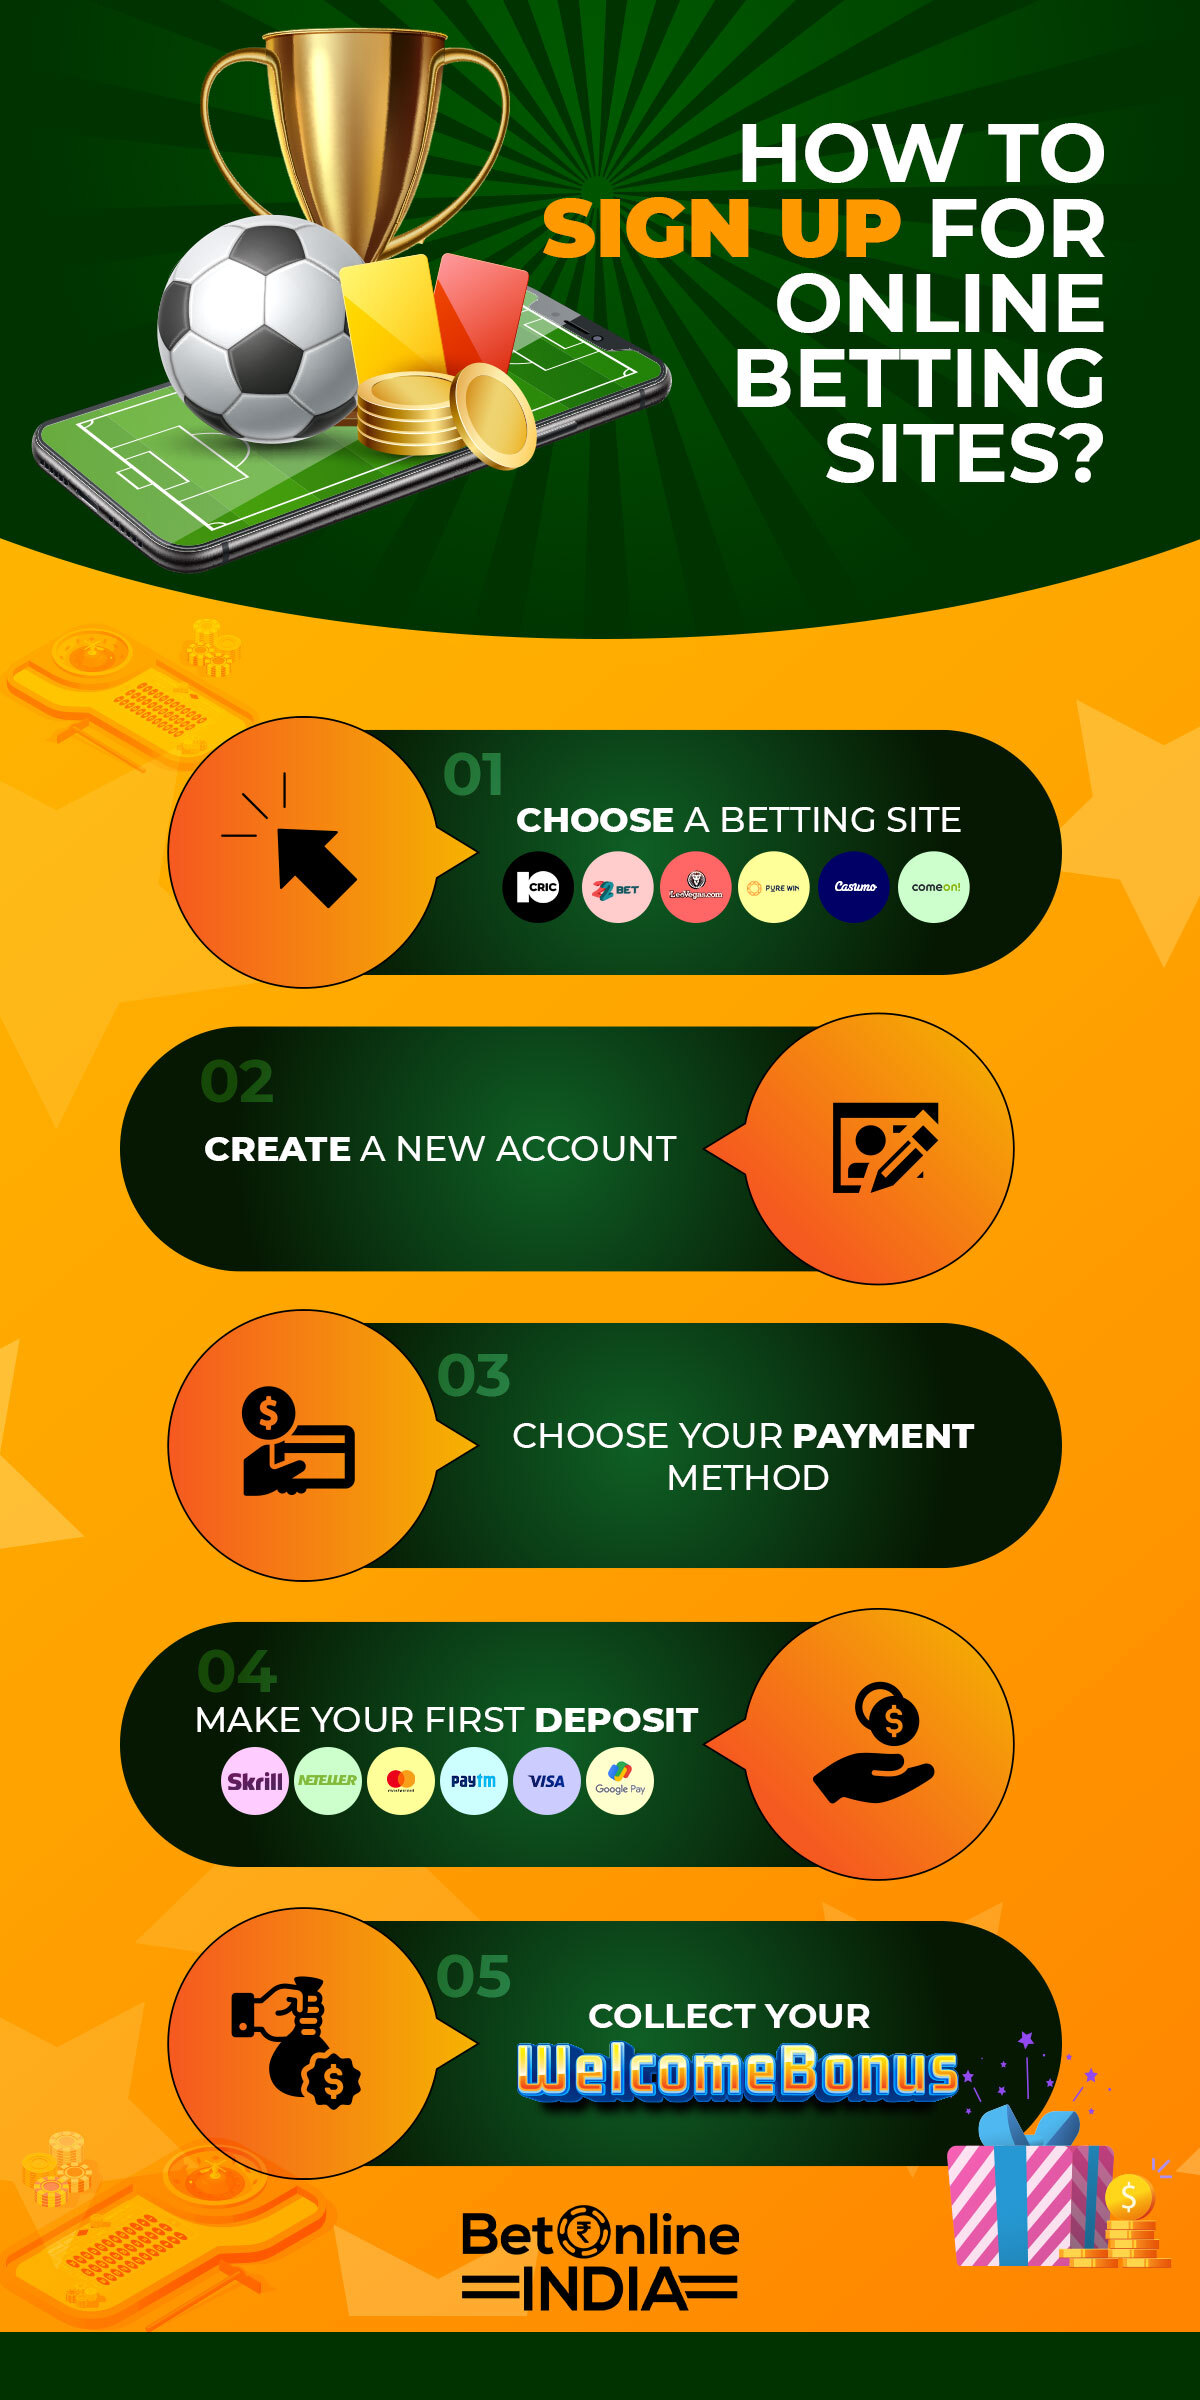 infographic about sign up on betting sites in india